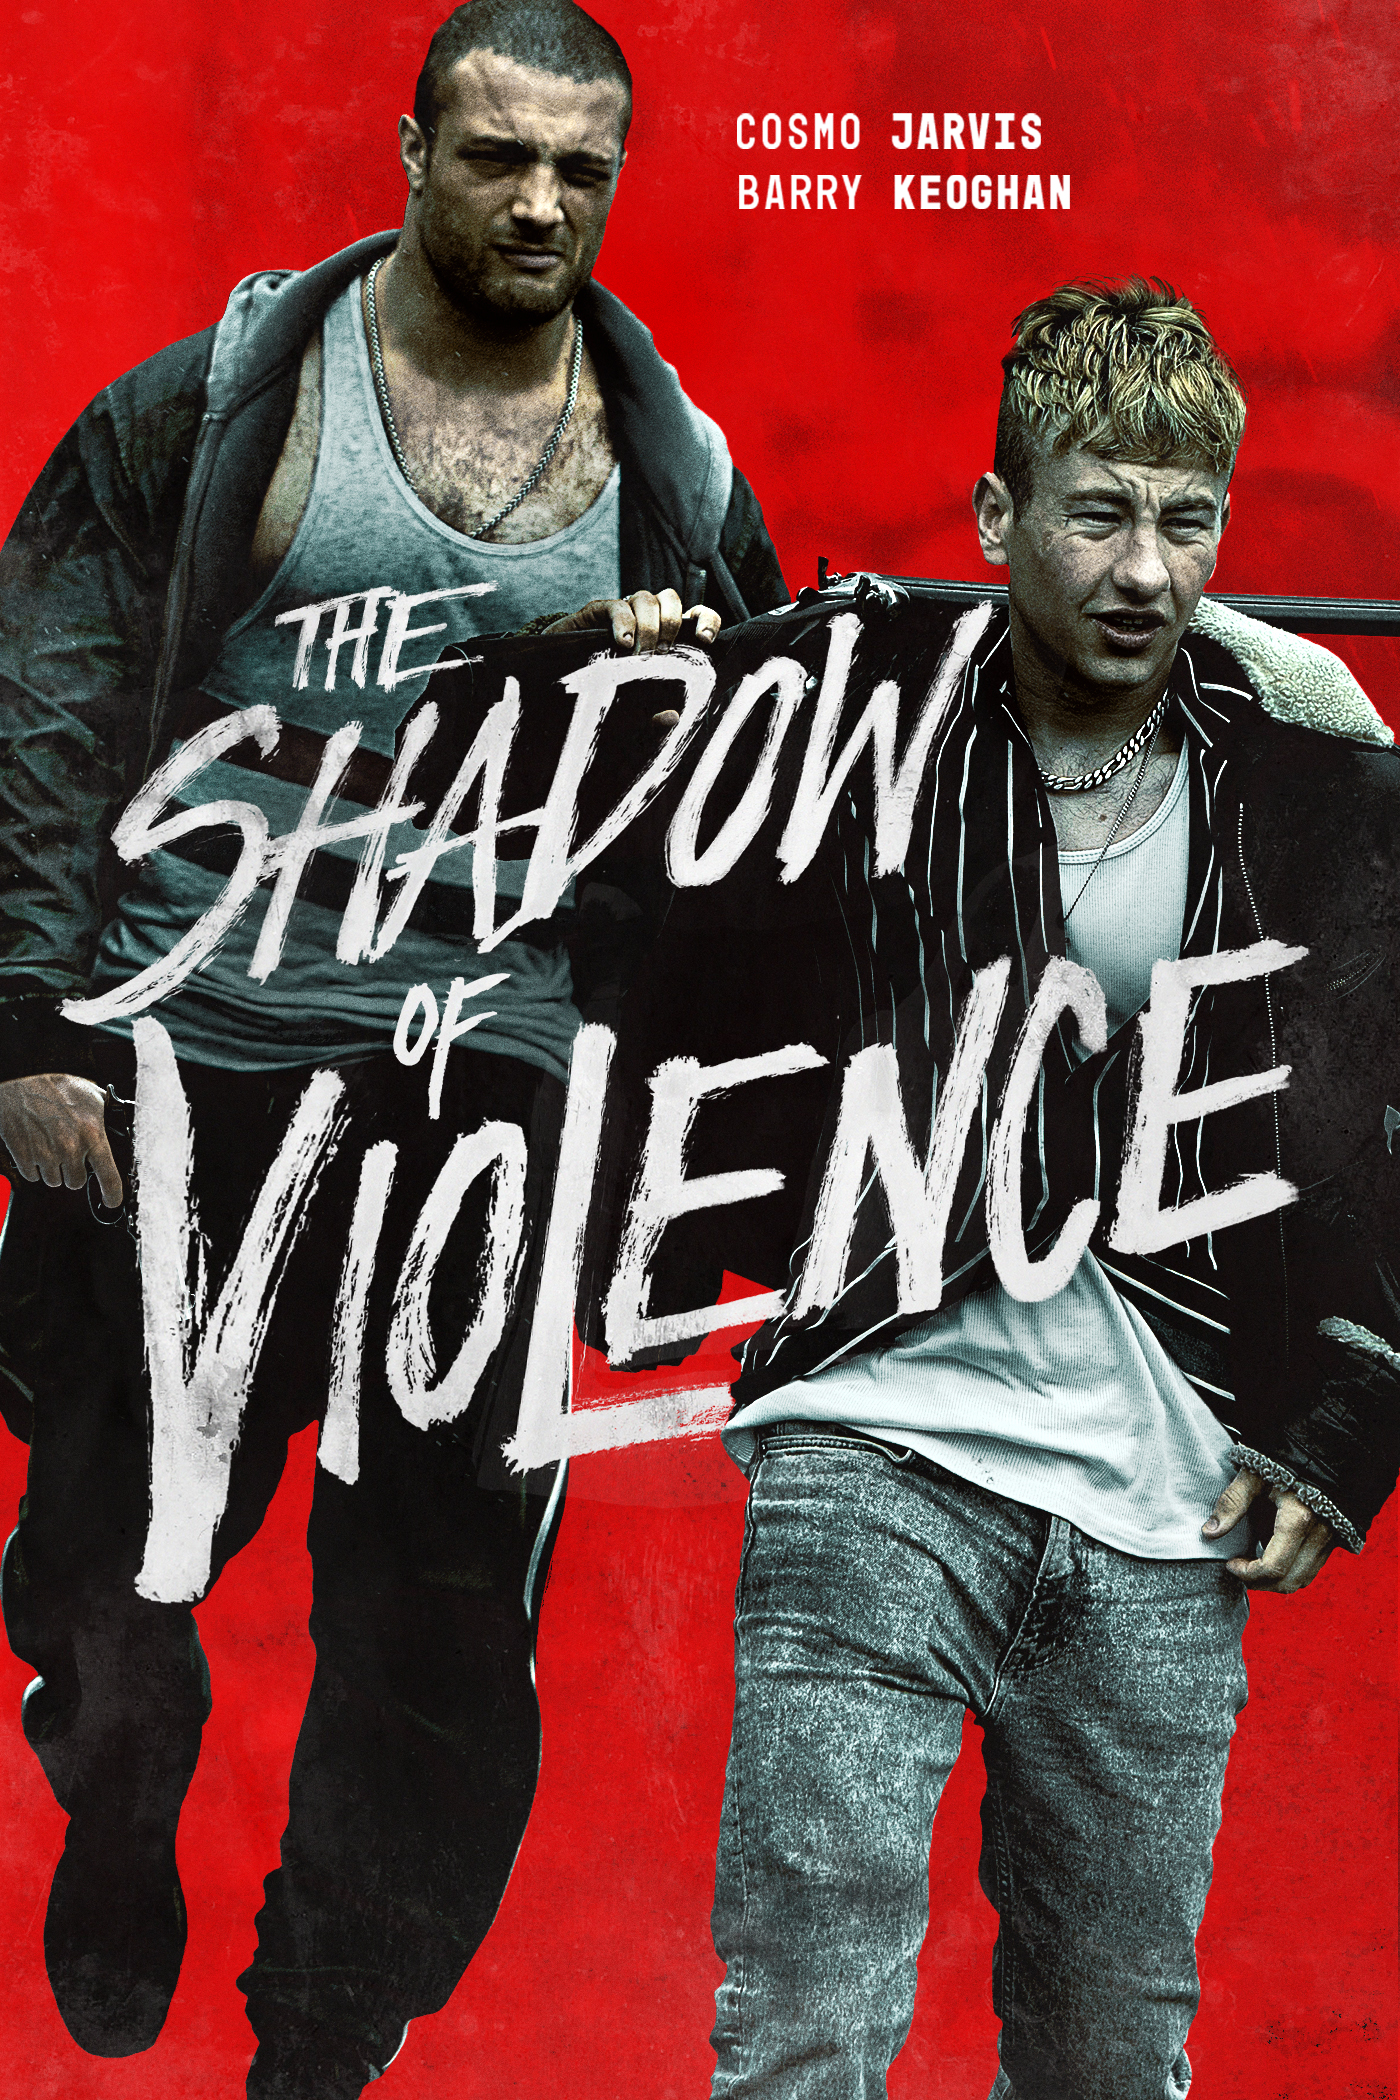 Shadow of Violence, The (fka Calm With Horses)